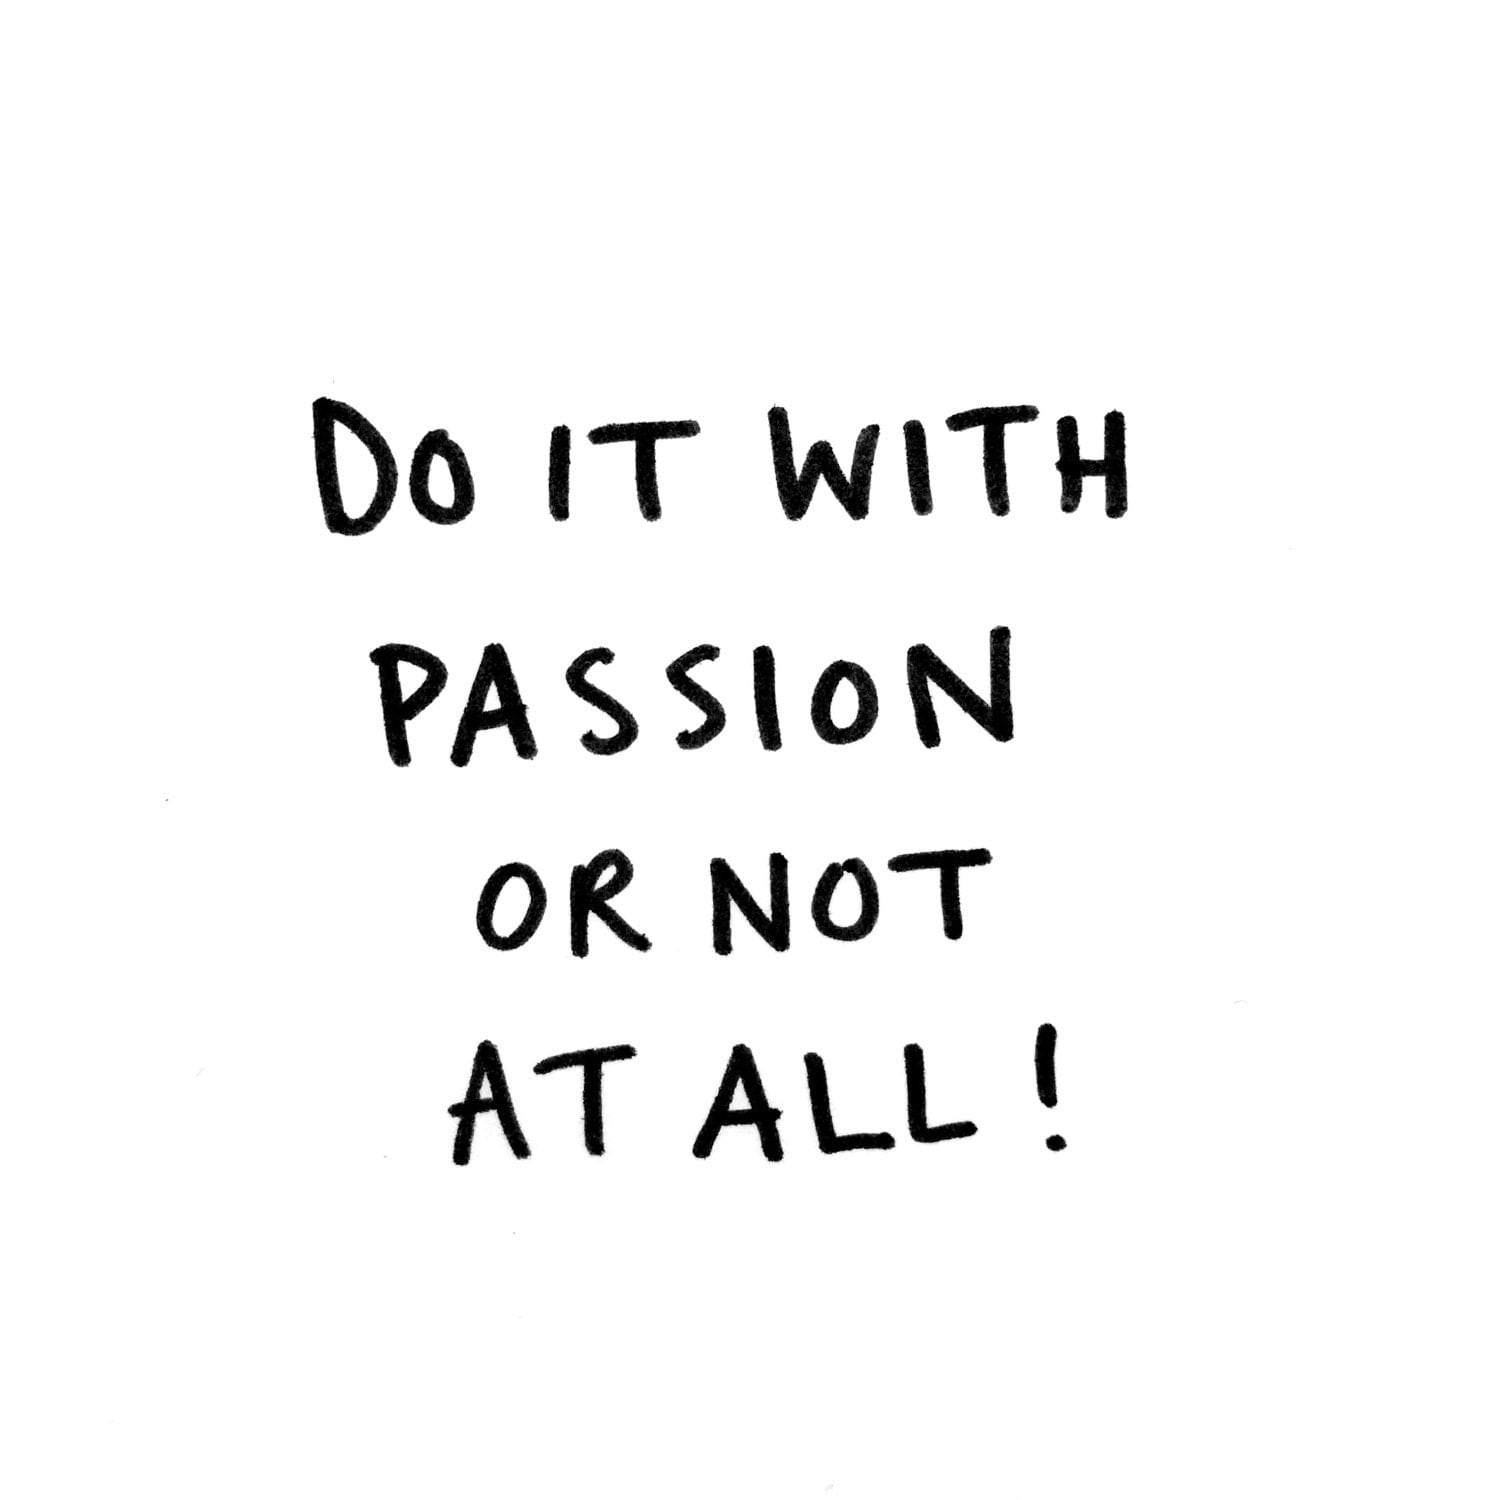 Do it with passion or not at all!